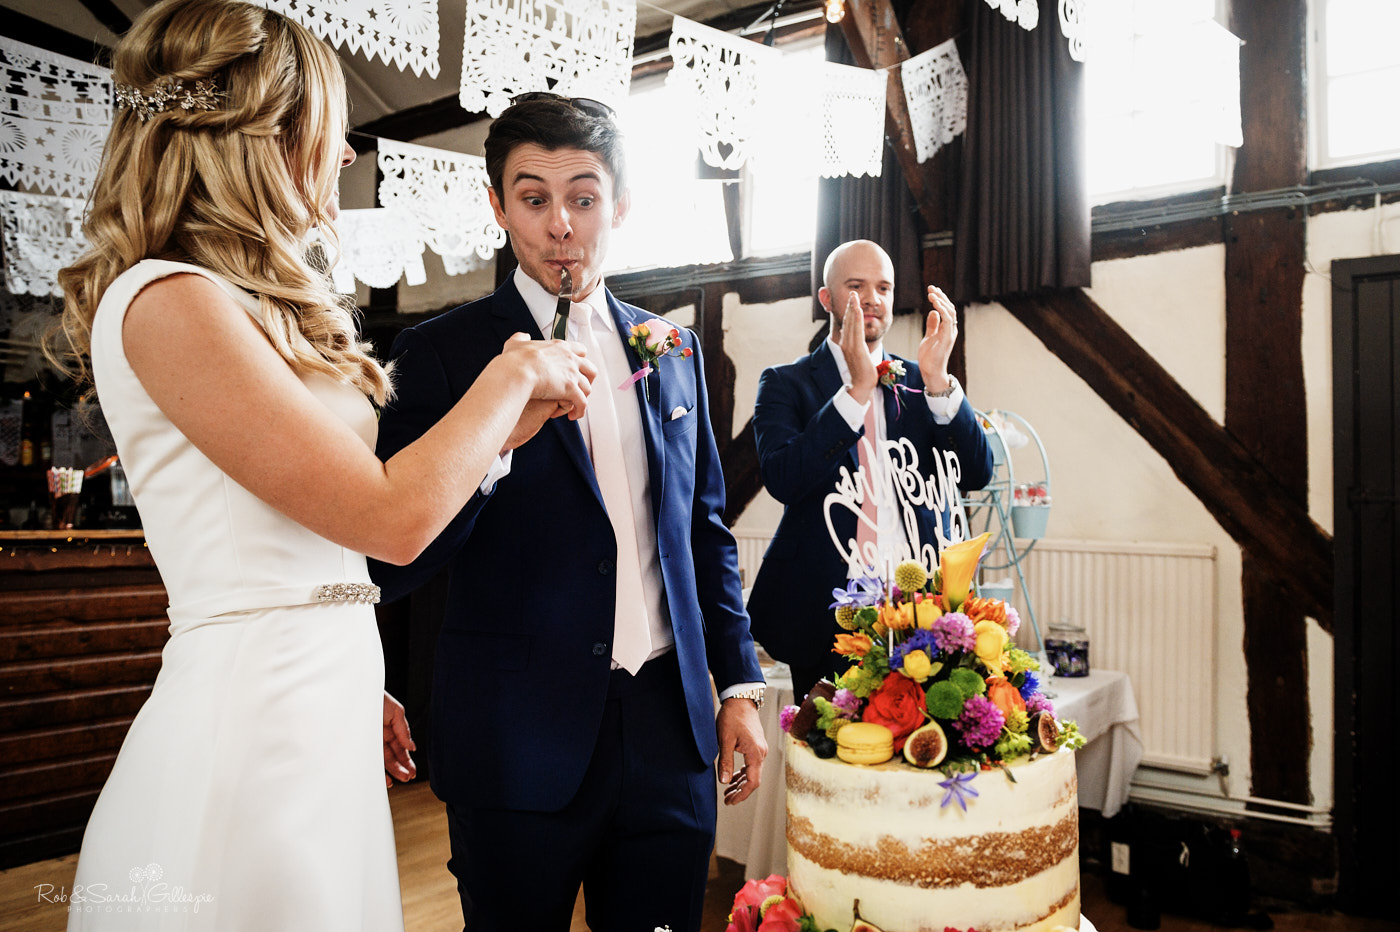 Bride and groom cut wedding cake at Belbroughton village hall